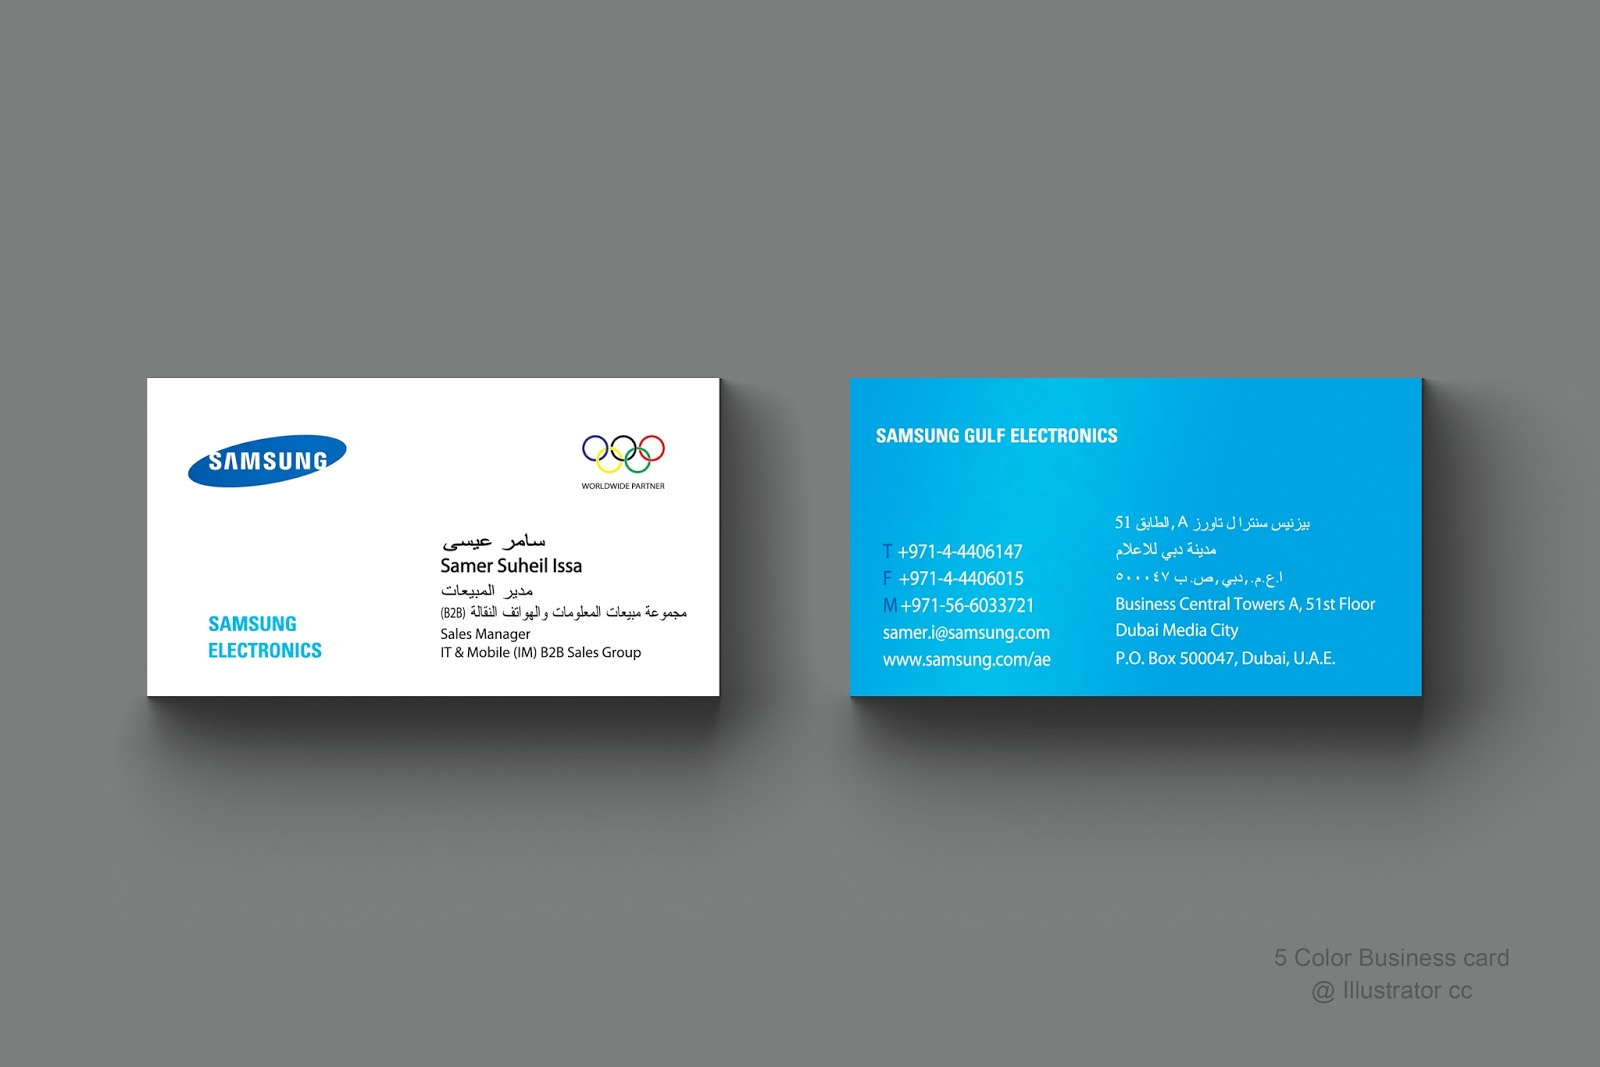 Magnificent city business card image business card ideas etadamfo business card printing dubai media city image collections card reheart Choice Image